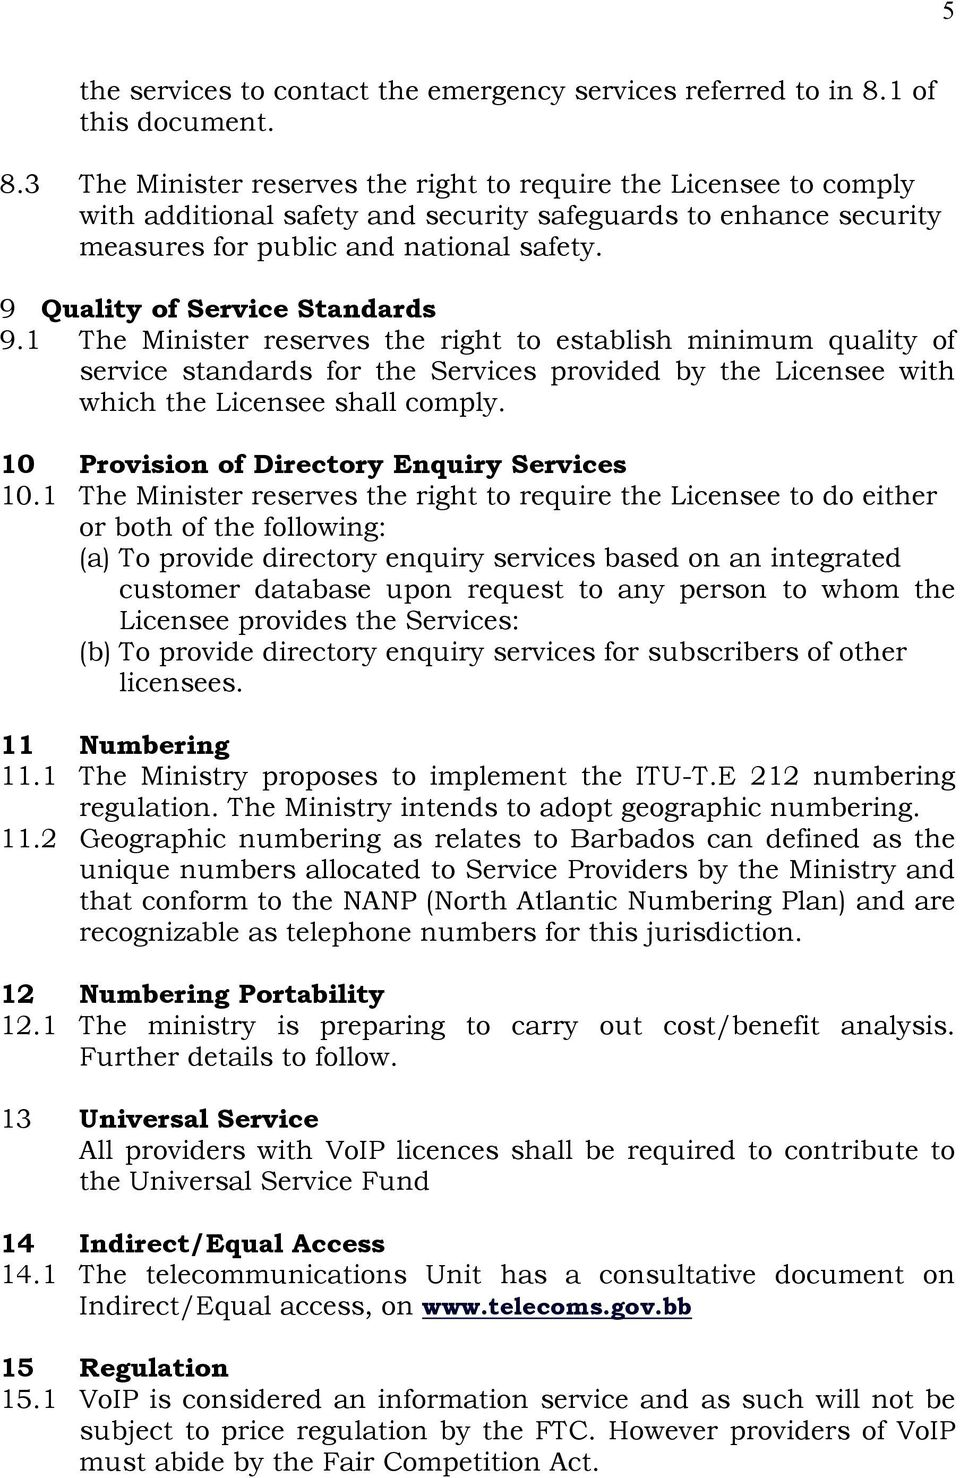 9 Quality of Service Standards 9.1 The Minister reserves the right to establish minimum quality of service standards for the Services provided by the Licensee with which the Licensee shall comply.